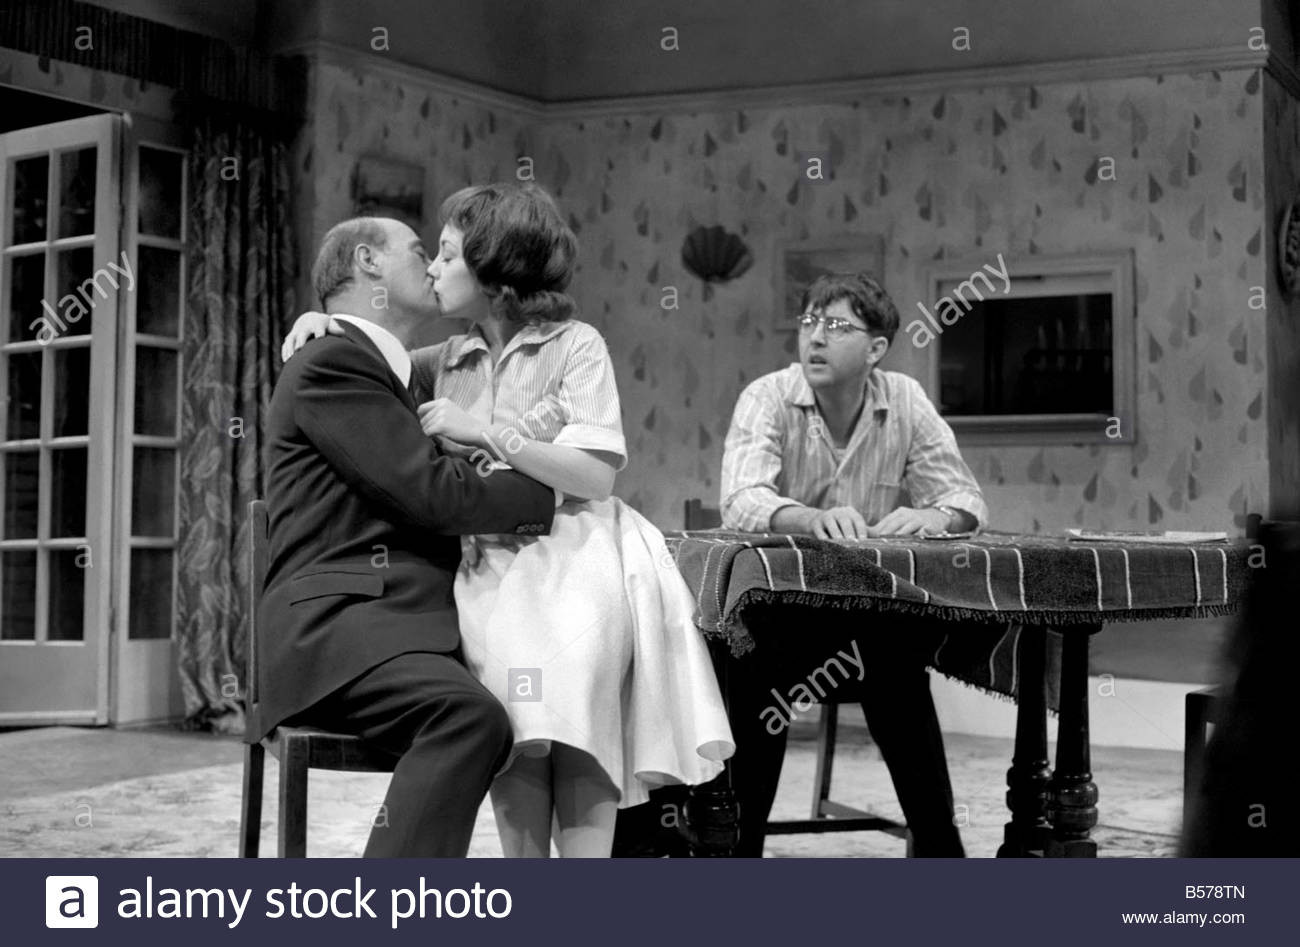 Best ideas about The Birthday Party Harold Pinter . Save or Pin Shaw Theatre The Birthday Party Harold Pinter s play The Now.